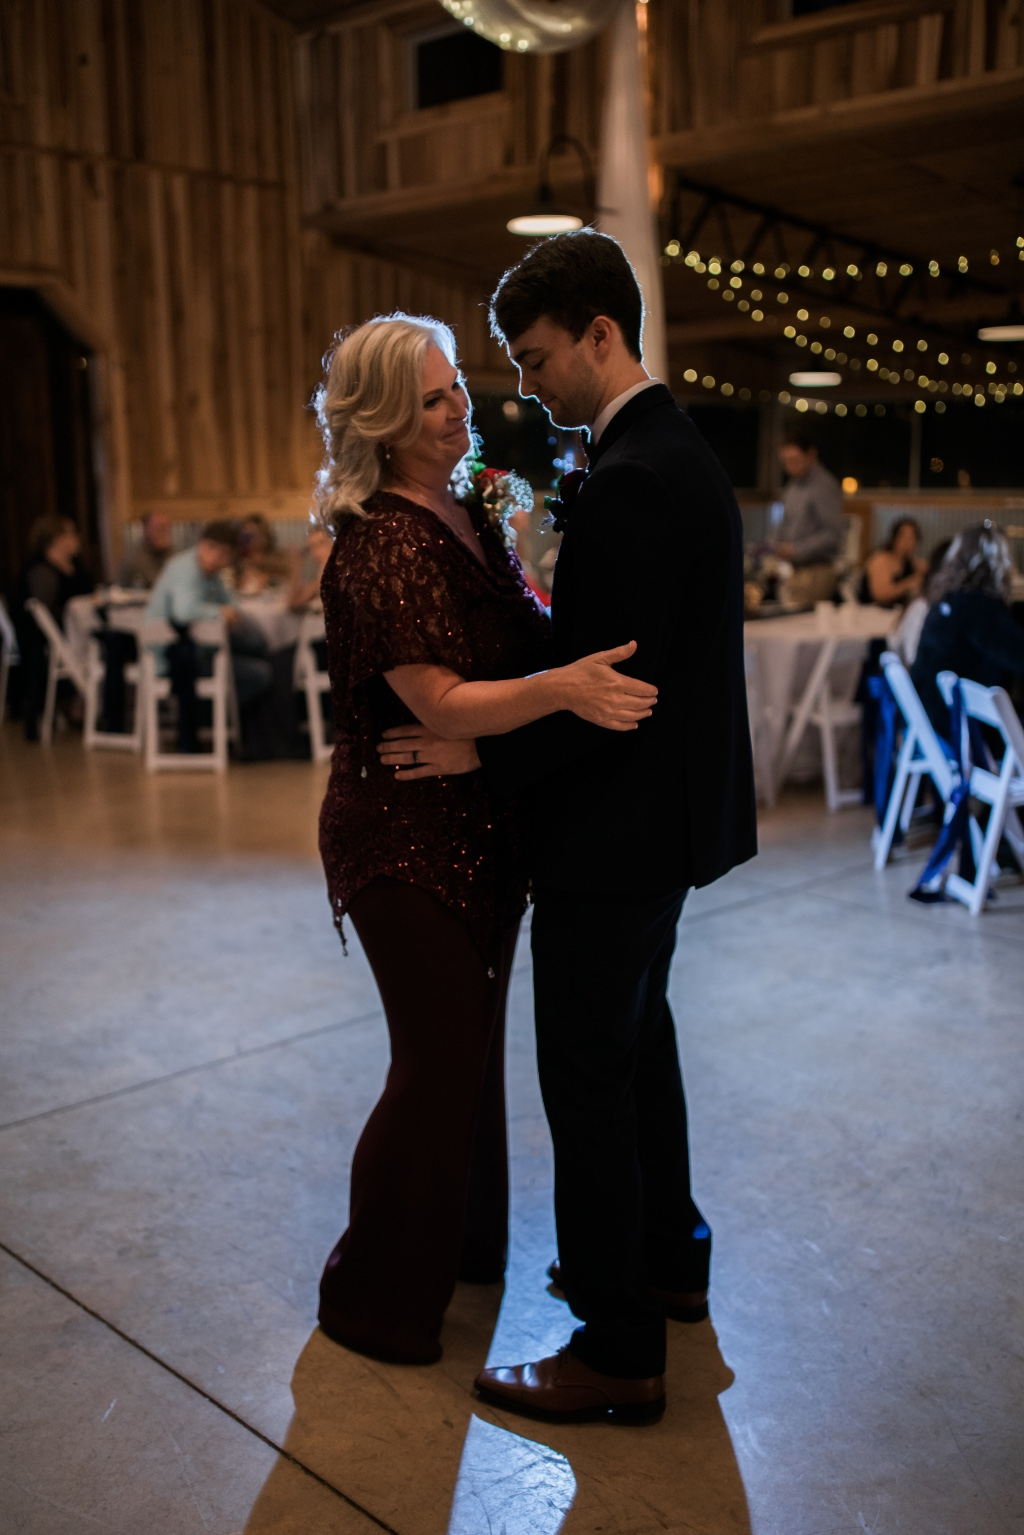 What does your first dance with mom look like?